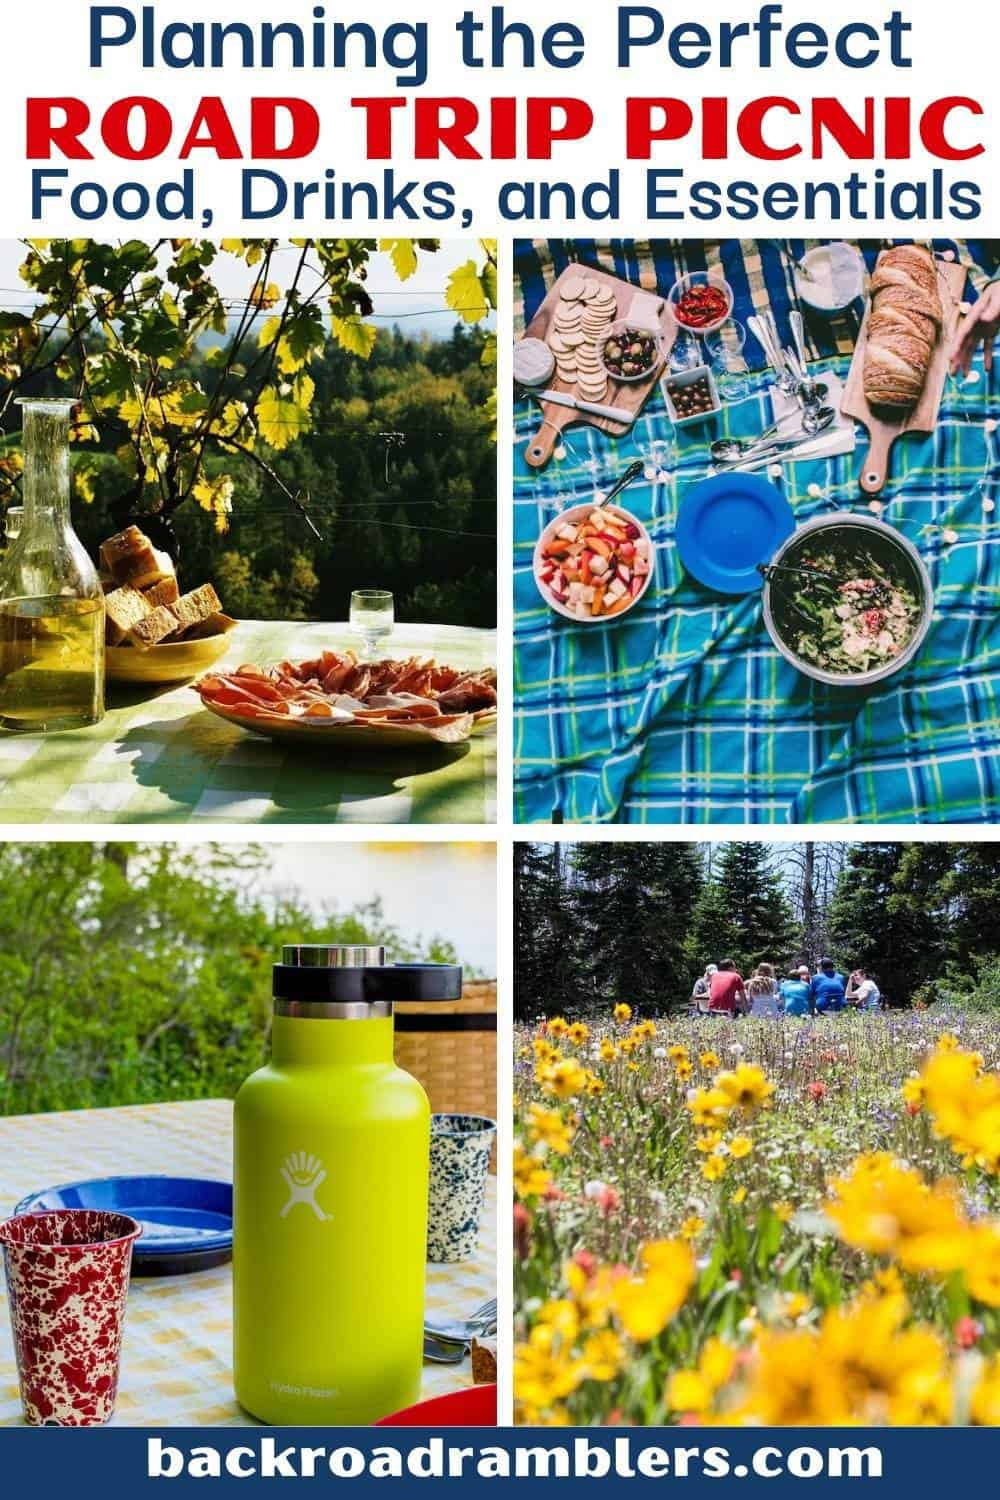 A collage of picnic photos. Text overlay: Planning the perfect road trip picnic - food, drinks, and essentials.